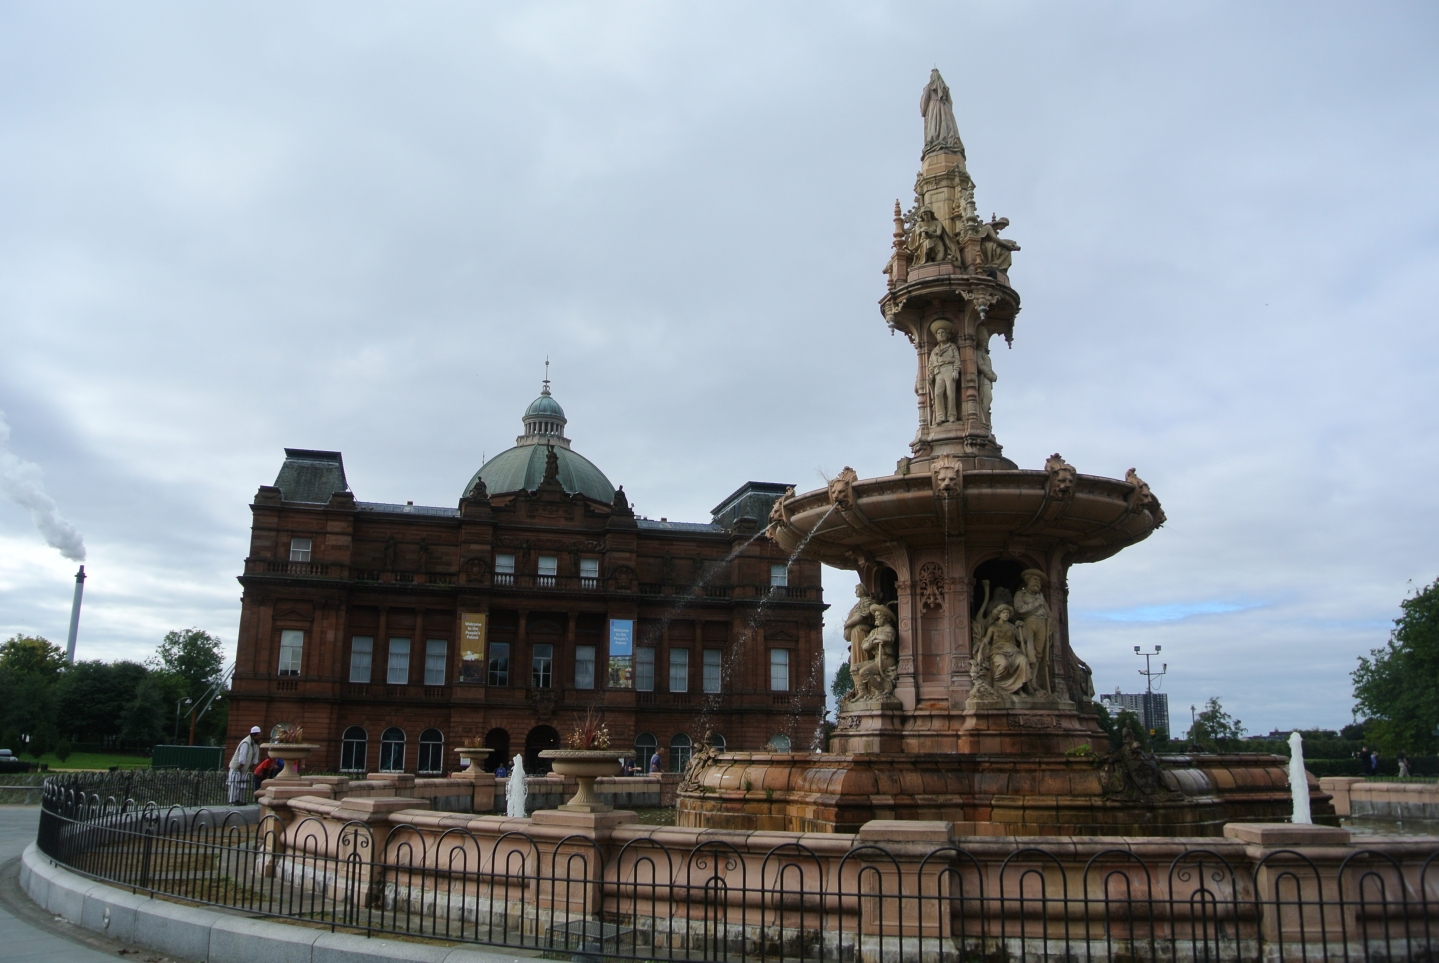 Doulton Fountain and People's Palace, Glasgow Green